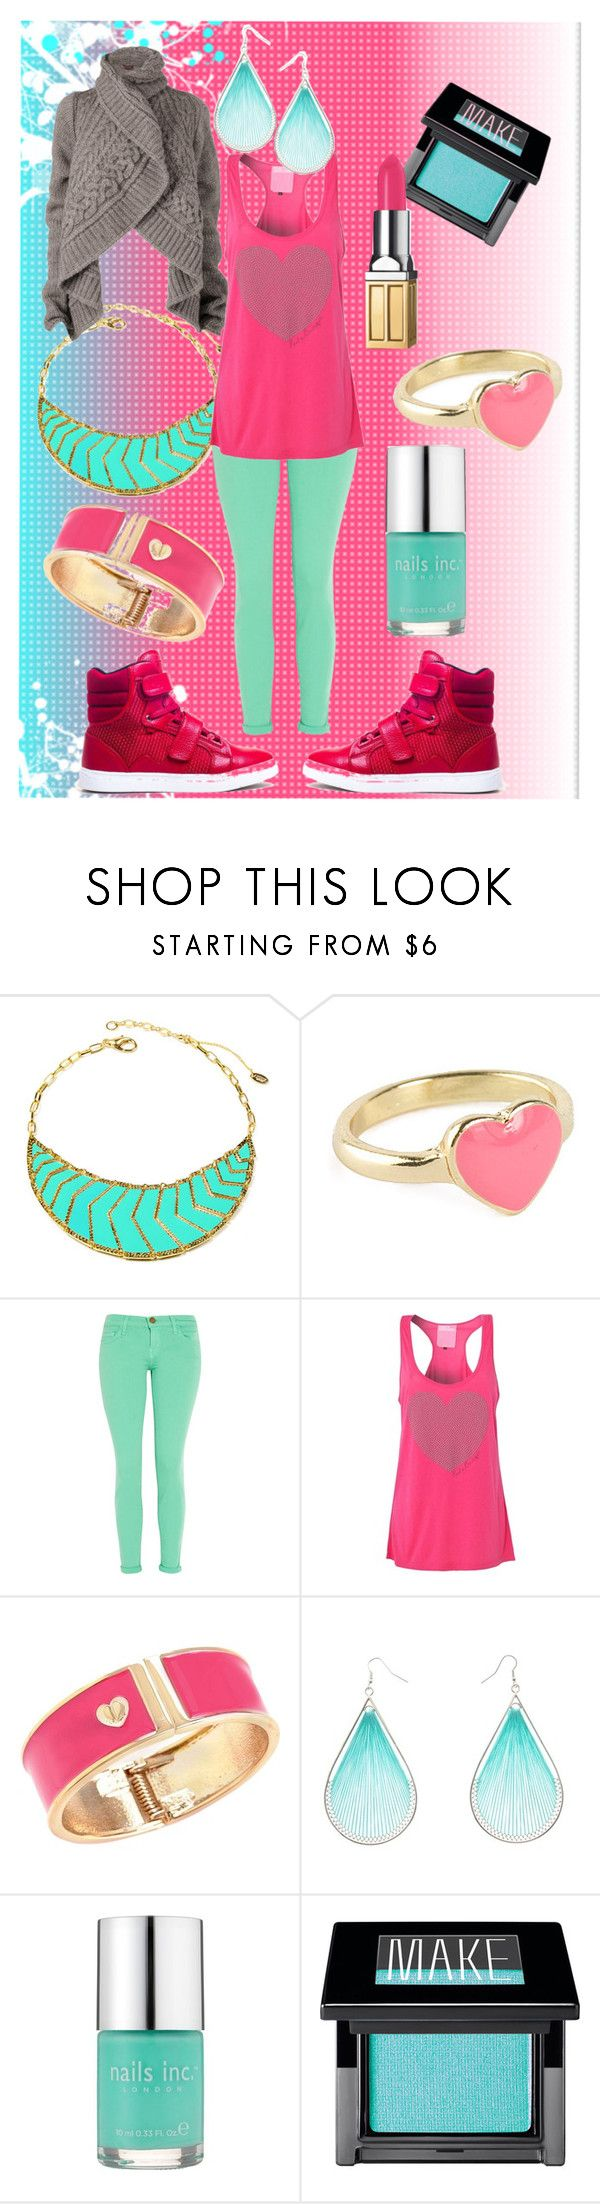 """random#37"" by faleur102 ❤ liked on Polyvore featuring Amrita Singh, Android Homme, Current/Elliott, Paul's Boutique, Betsey Johnson, Nails Inc., Make, Elizabeth Arden and 161"